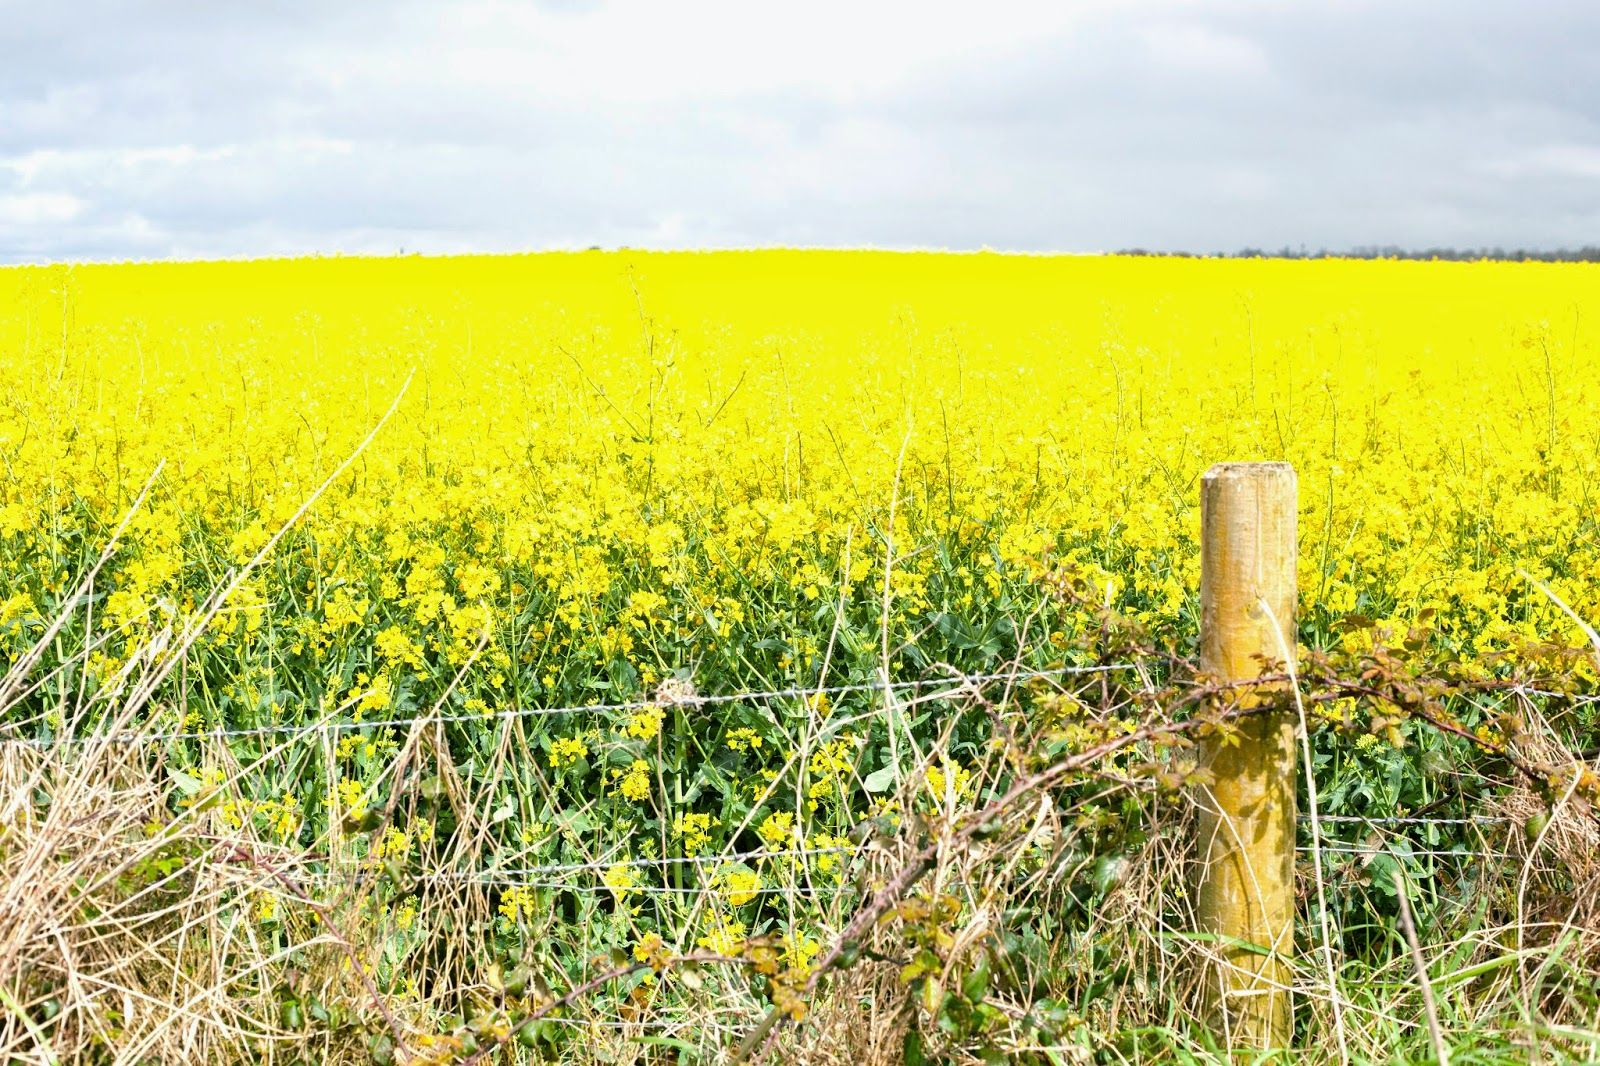 Fields of yellow flowers found throughout ireland in april celtic fields of yellow flowers found throughout ireland in april mightylinksfo Images